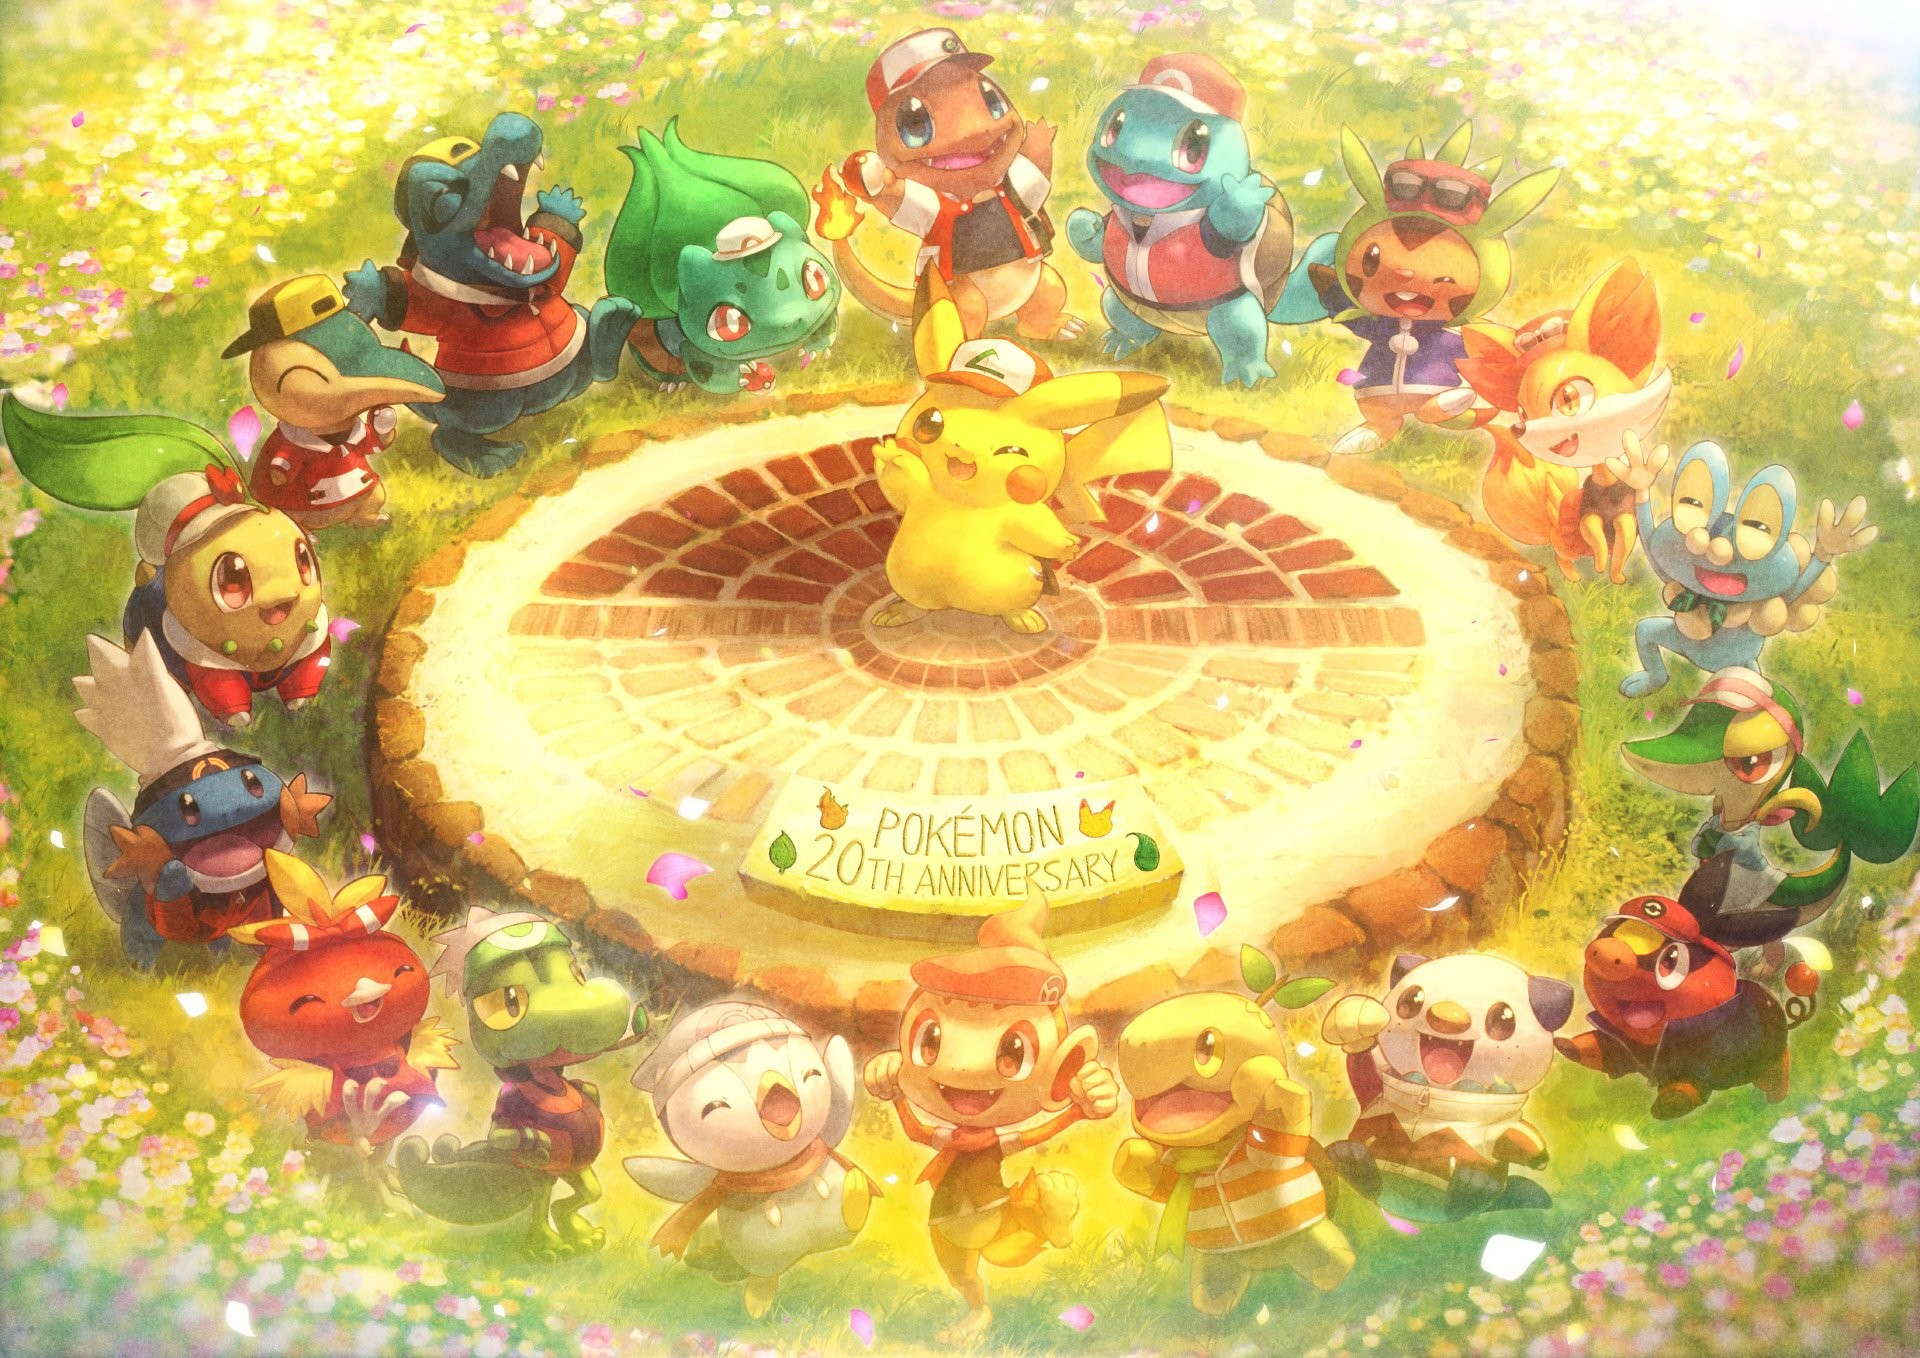 1920x1358 chespin chimchar cosplay fennekin froakie mudkip oshawott pikachu piplup  pokemon snivy squirtle tepig toitoi508 torchic totodile